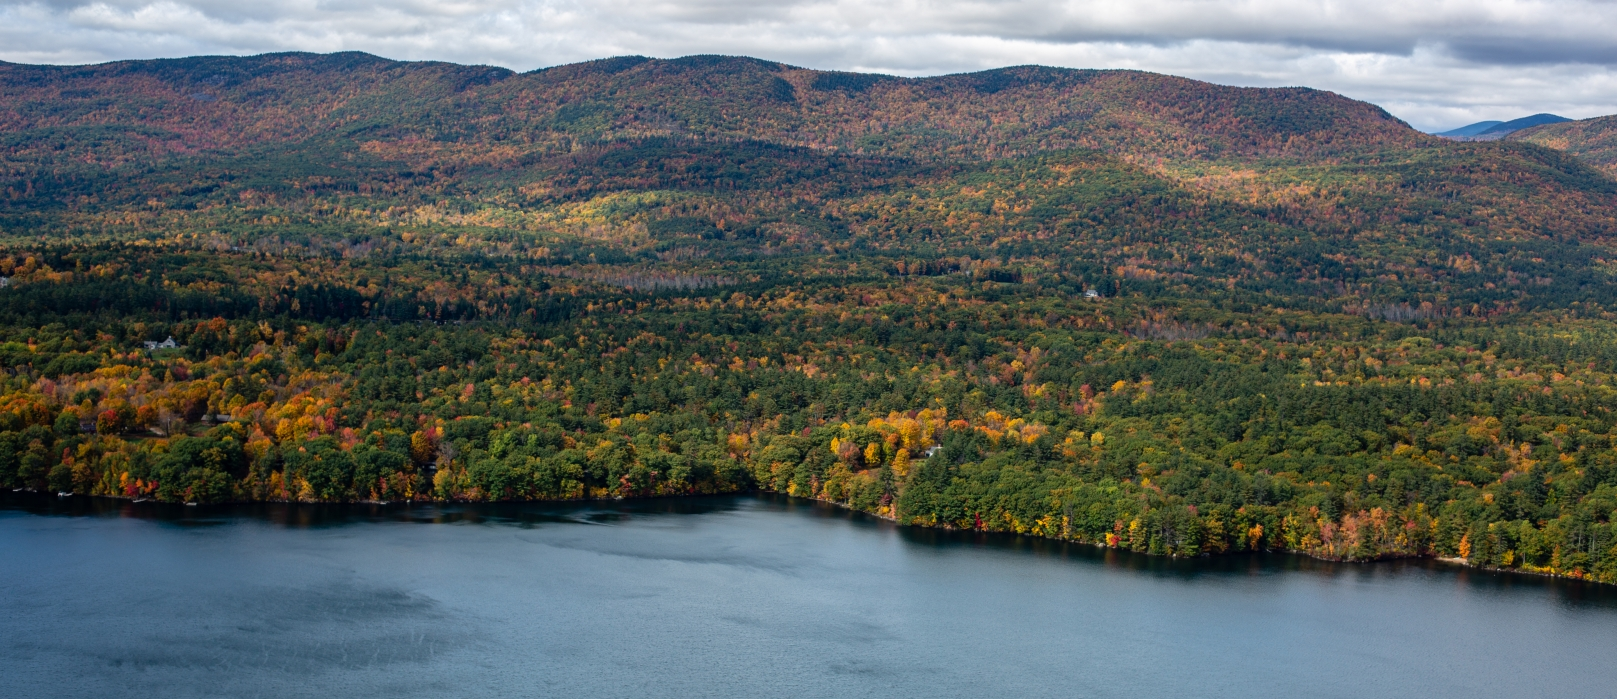 A view from Eagle Cliff of autumn foliage among hills and mountains in the distance.